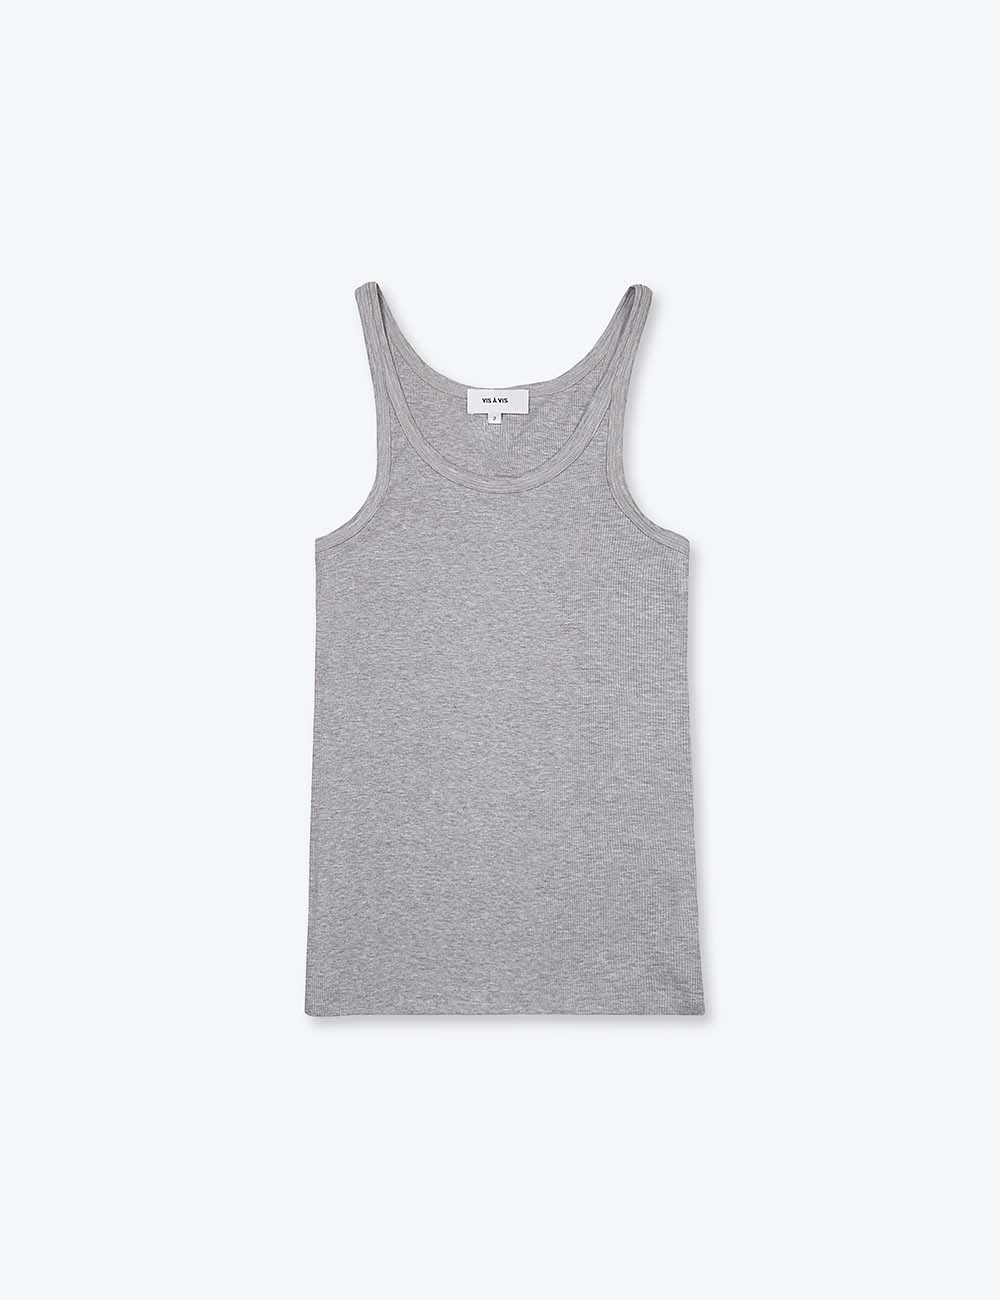 RIBBED TANK TOP (GRAY)